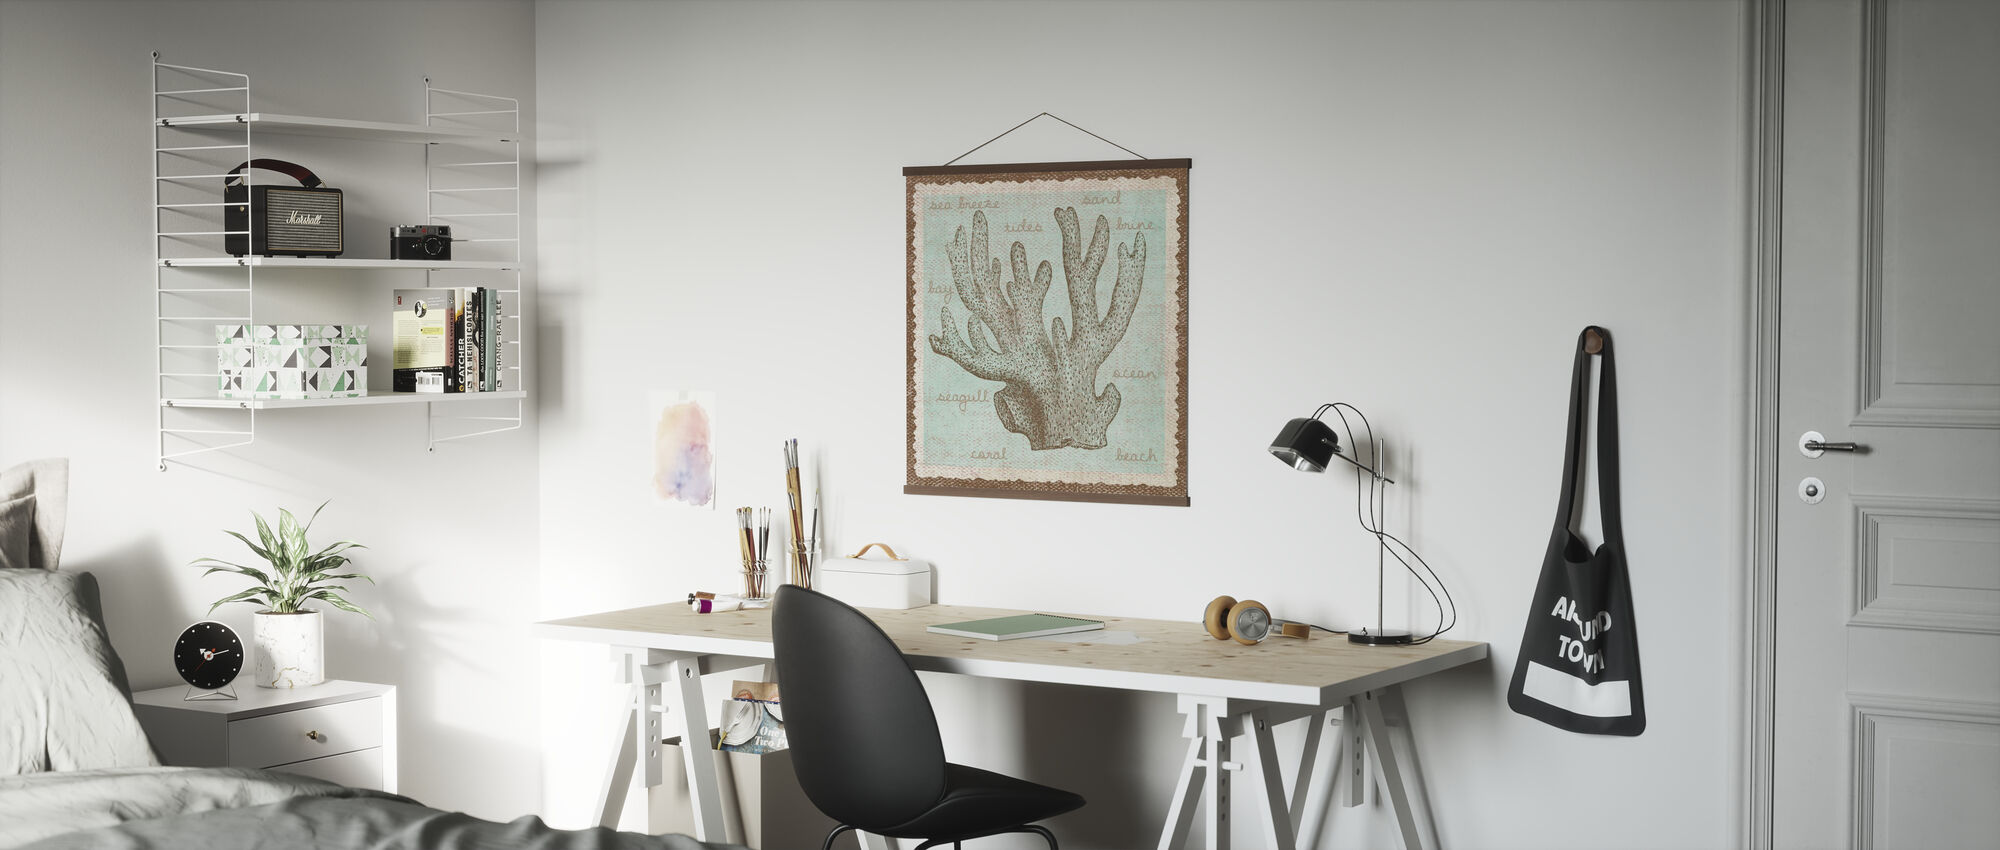 Coral Art - Poster - Office